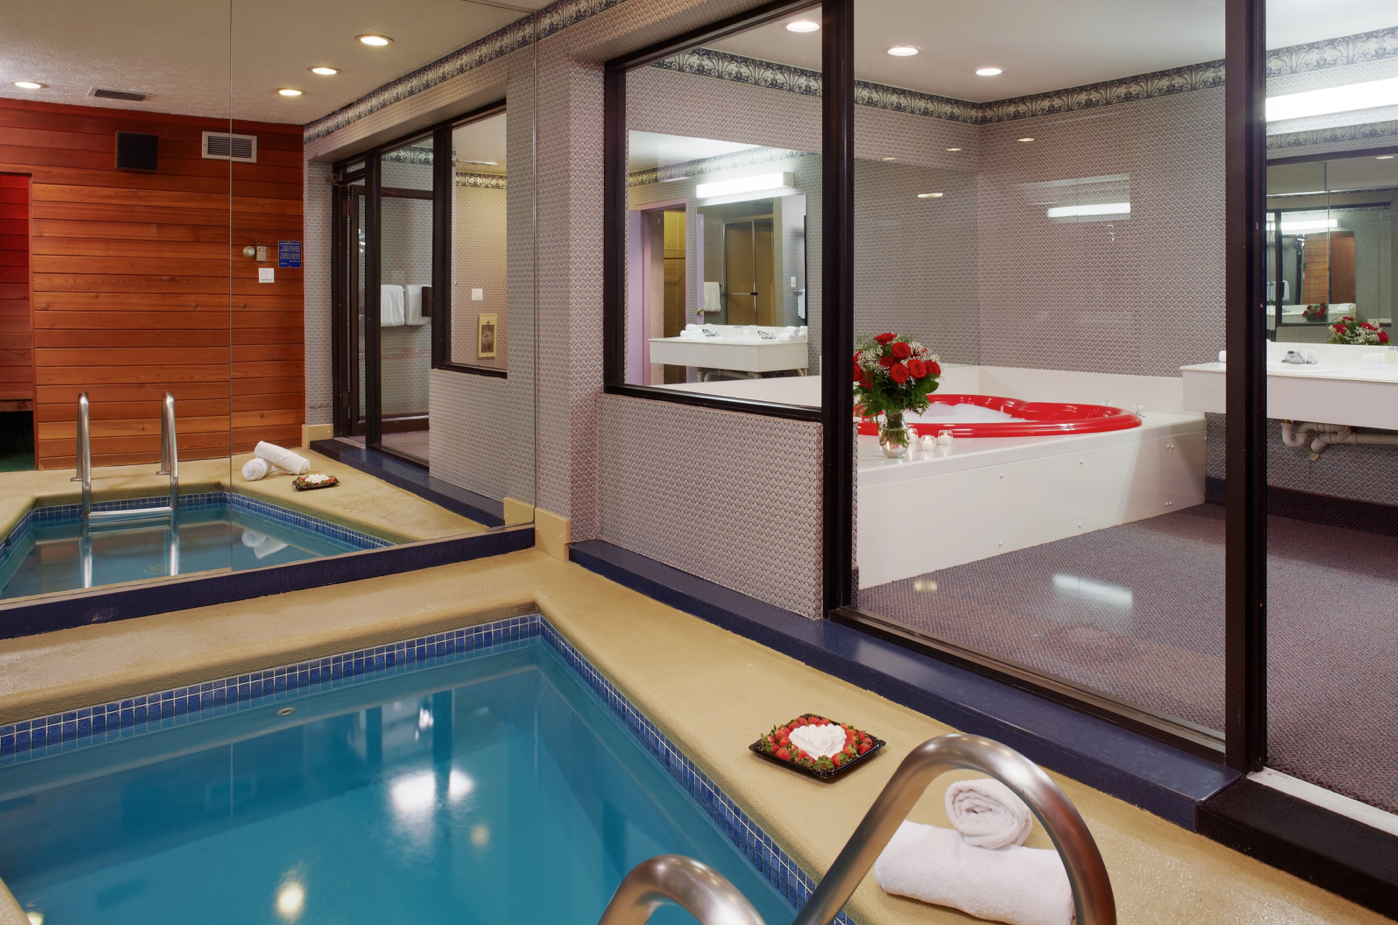 Cove Fantasy Suite Featuring In Suite Pool And Heart Shaped Whirlpool Bath For Two Poconos Resort Fantasy Suites Cove